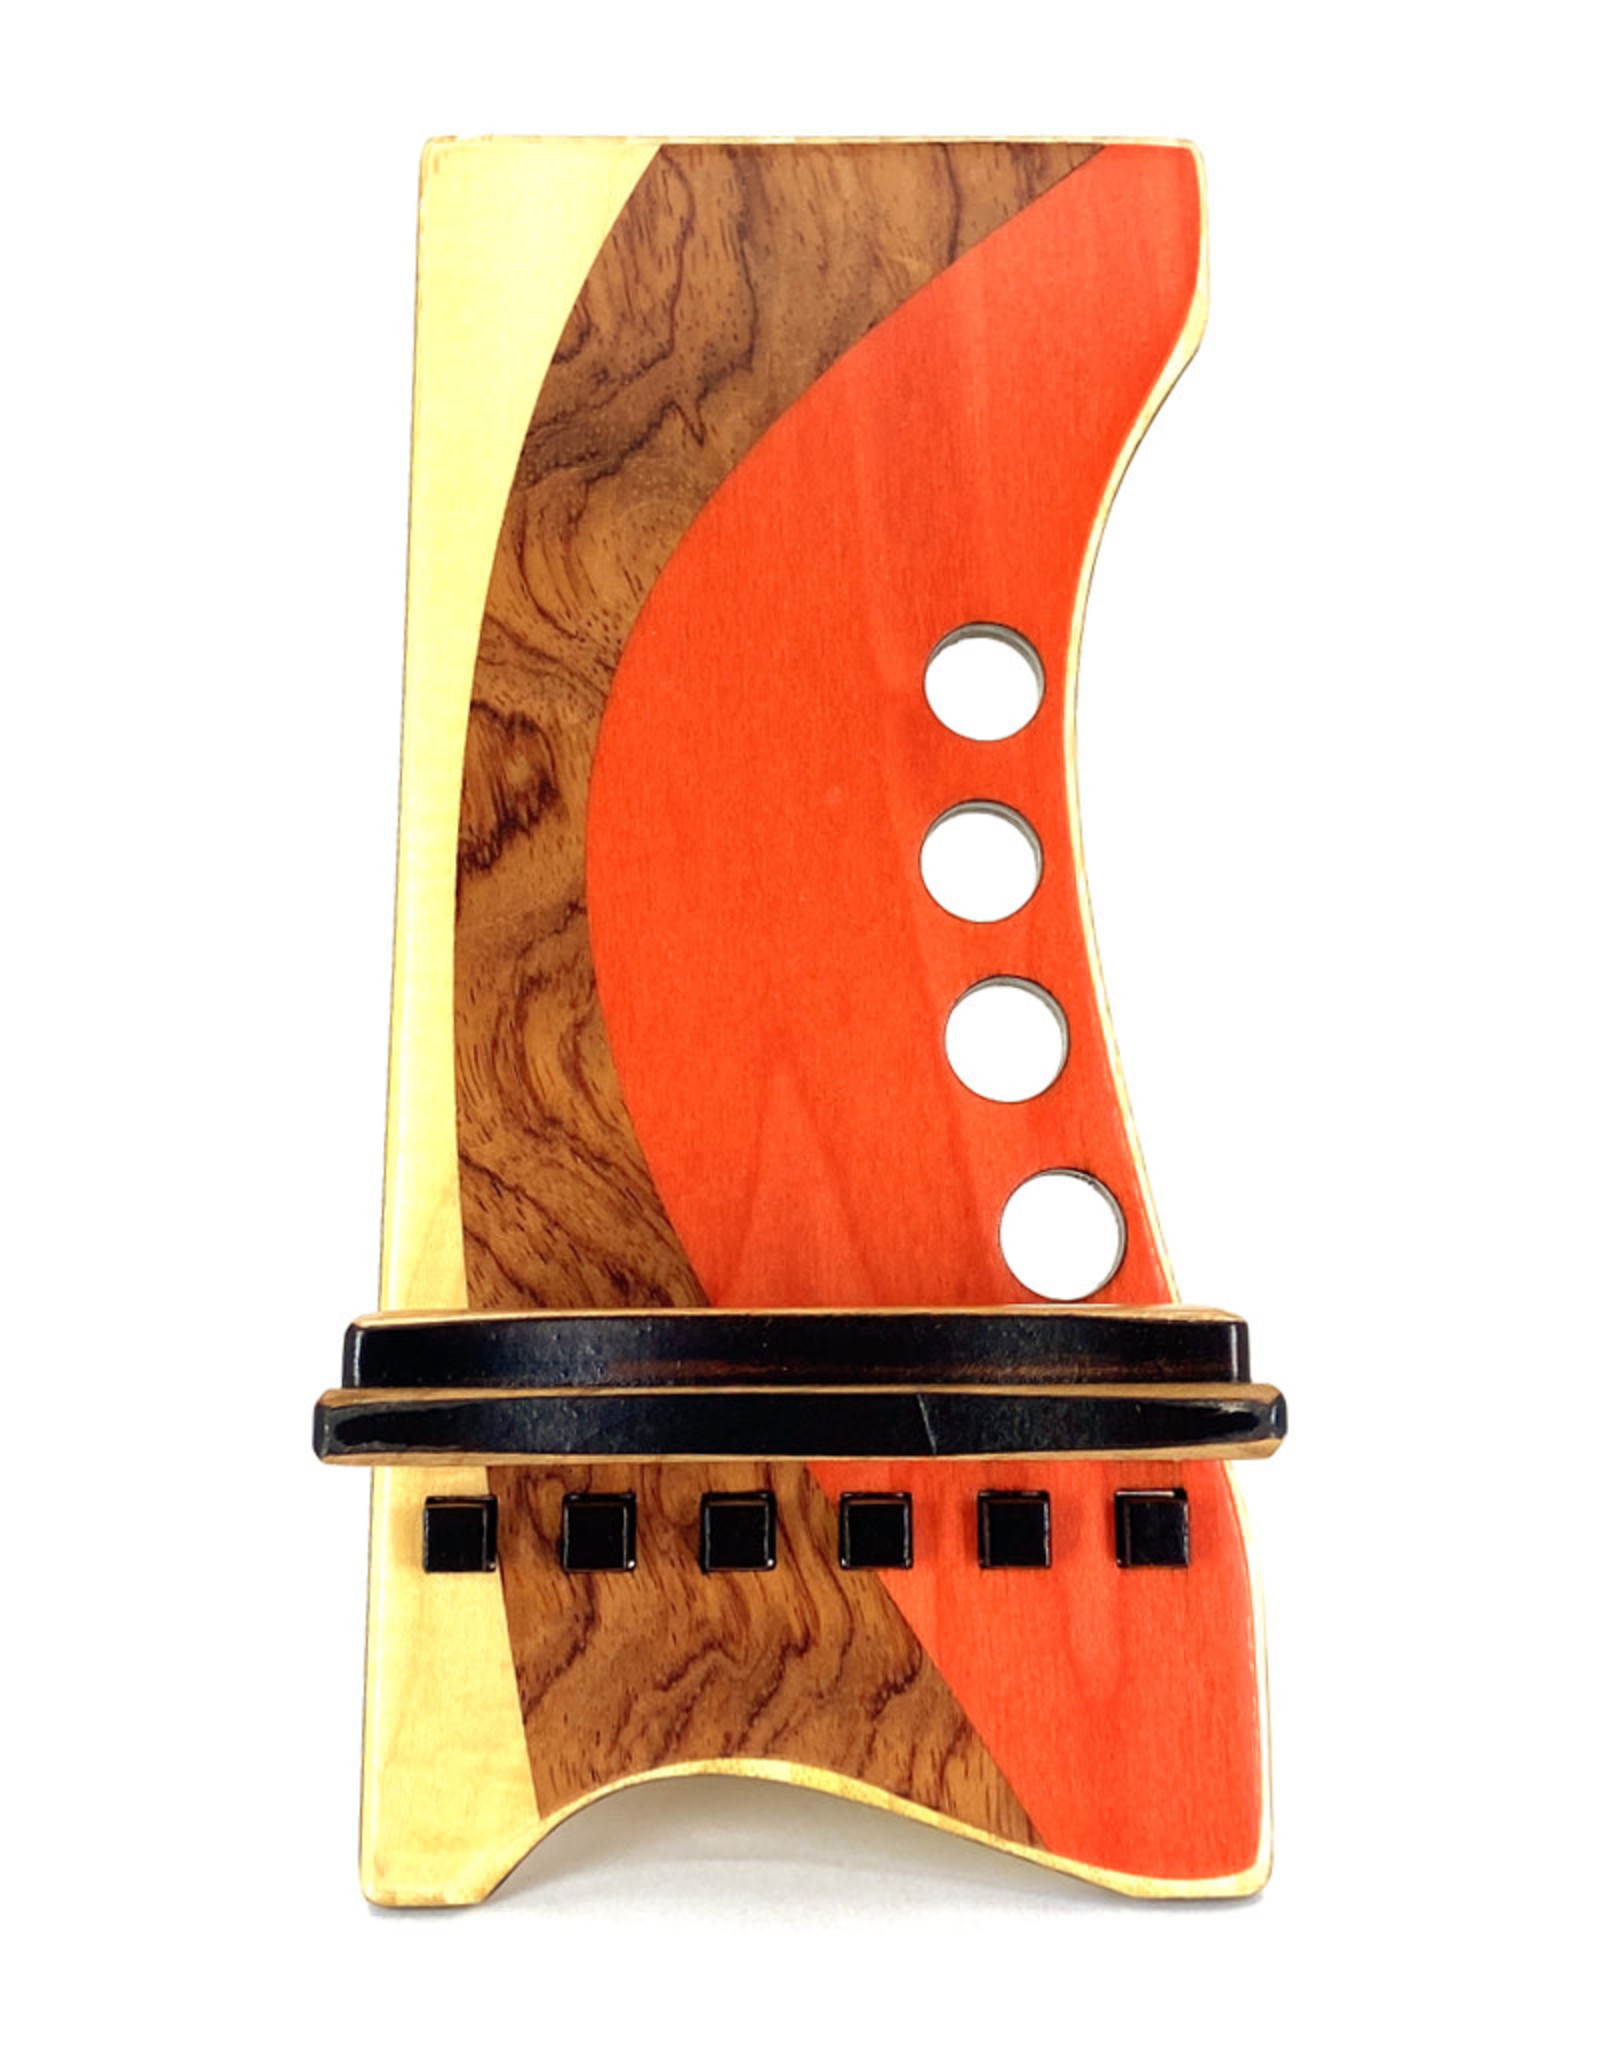 LOST ART WOODWORKS ORANGE & BROWN II MARQUETRY INLAID PHONE STAND